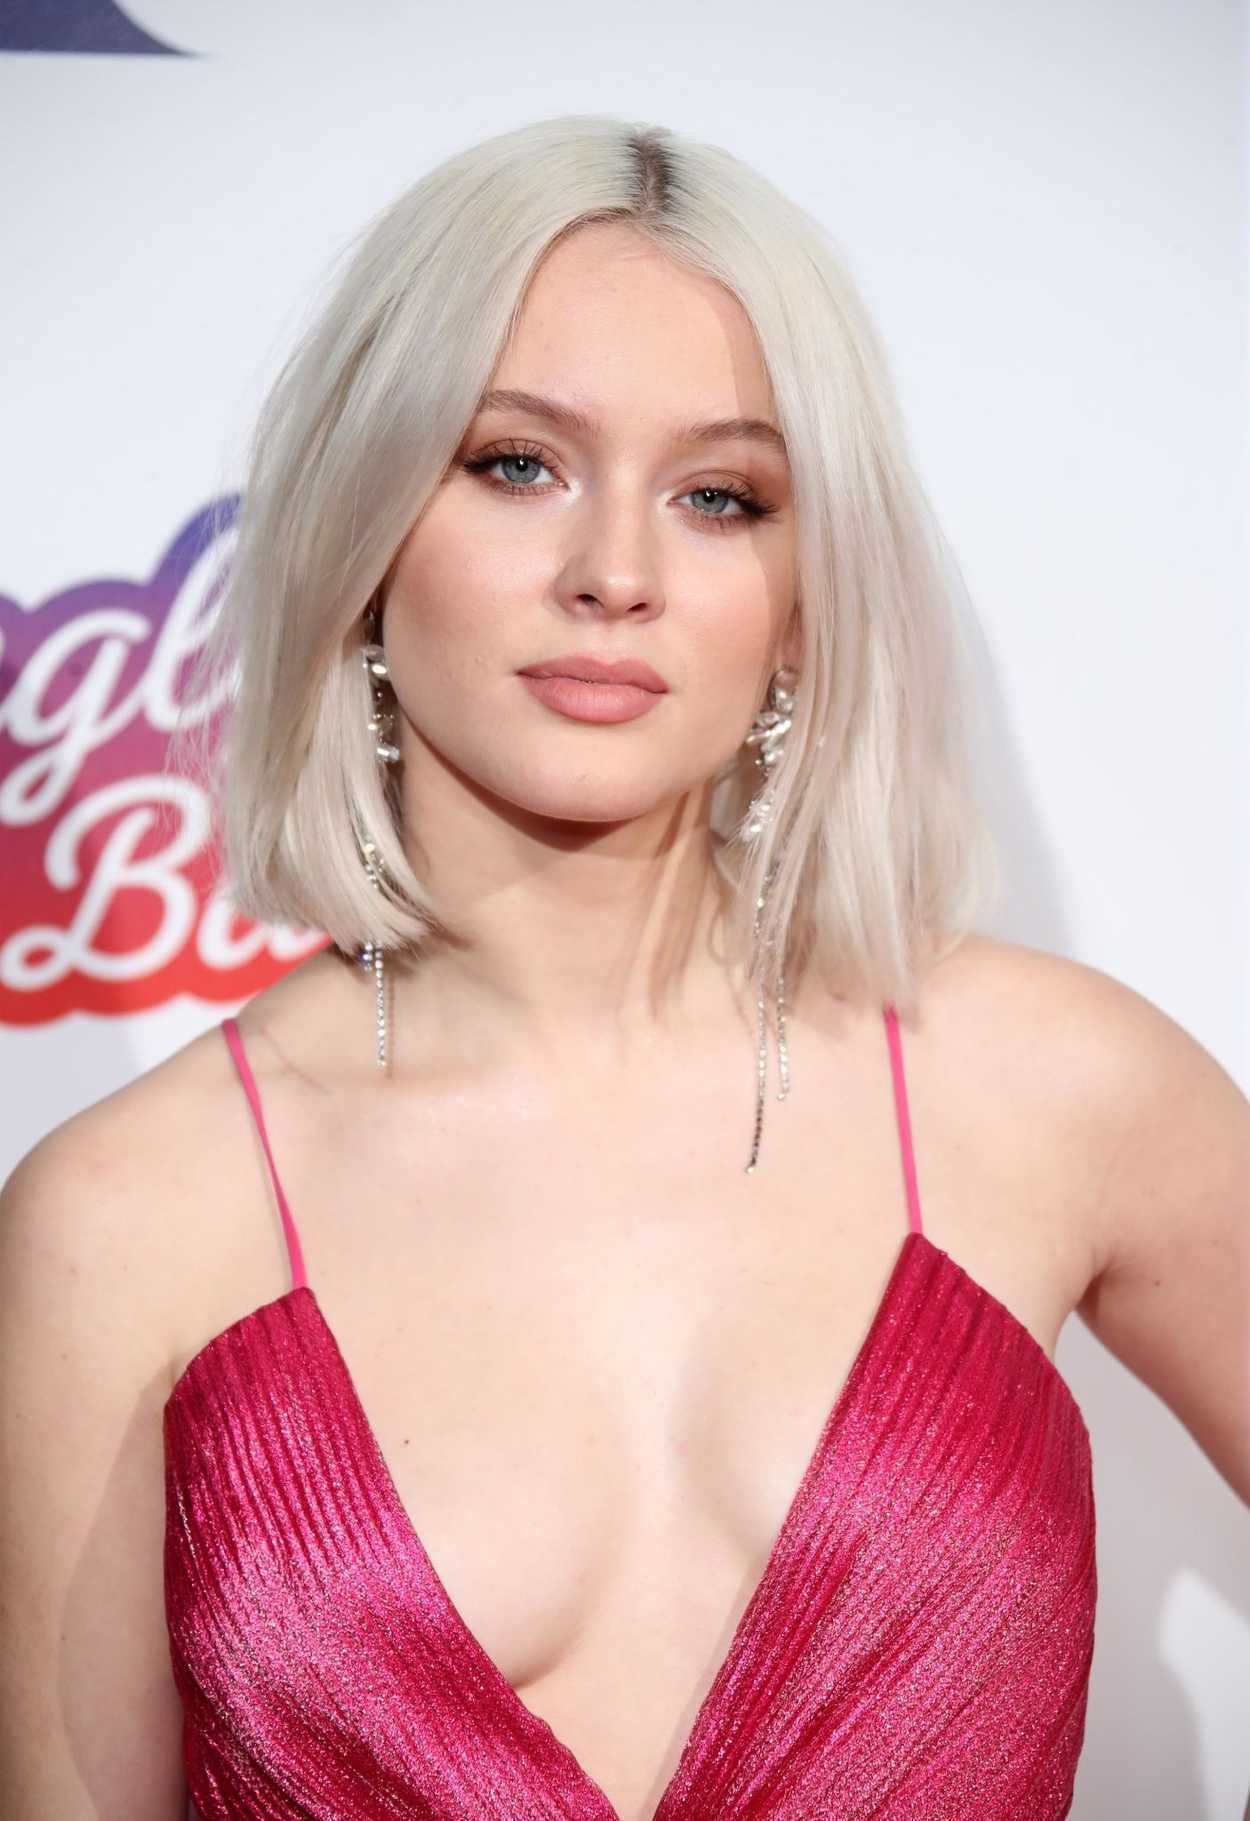 Zara Larsson Attends 2018 Capital FM Jingle Bell Ball In